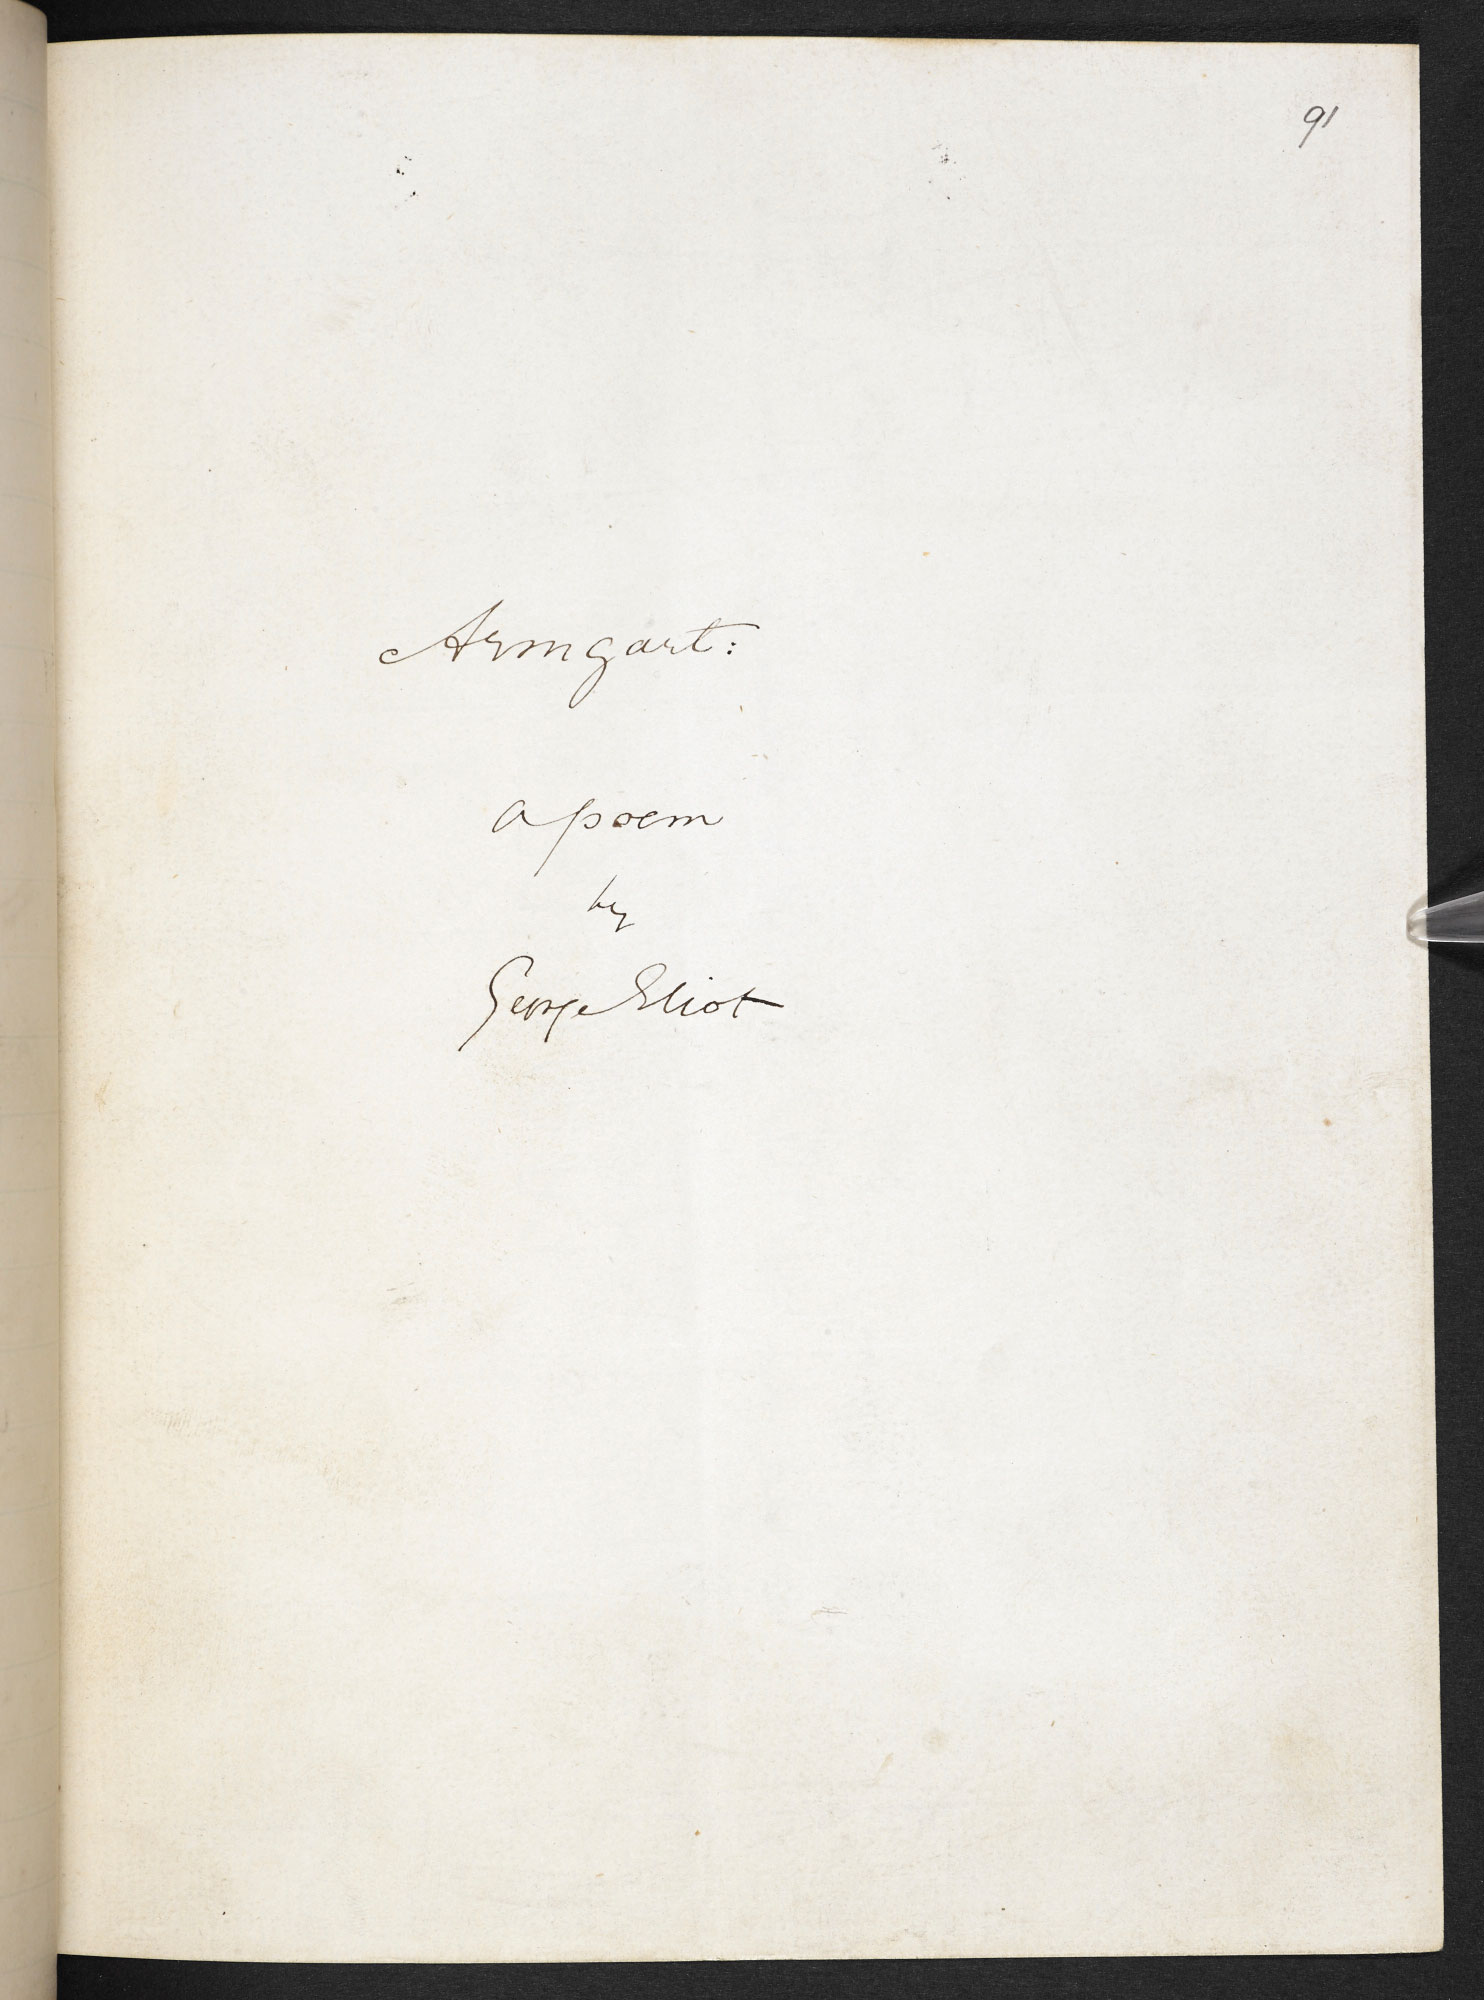 Manuscript of 'Armgart': dramatic poem by George Eliot